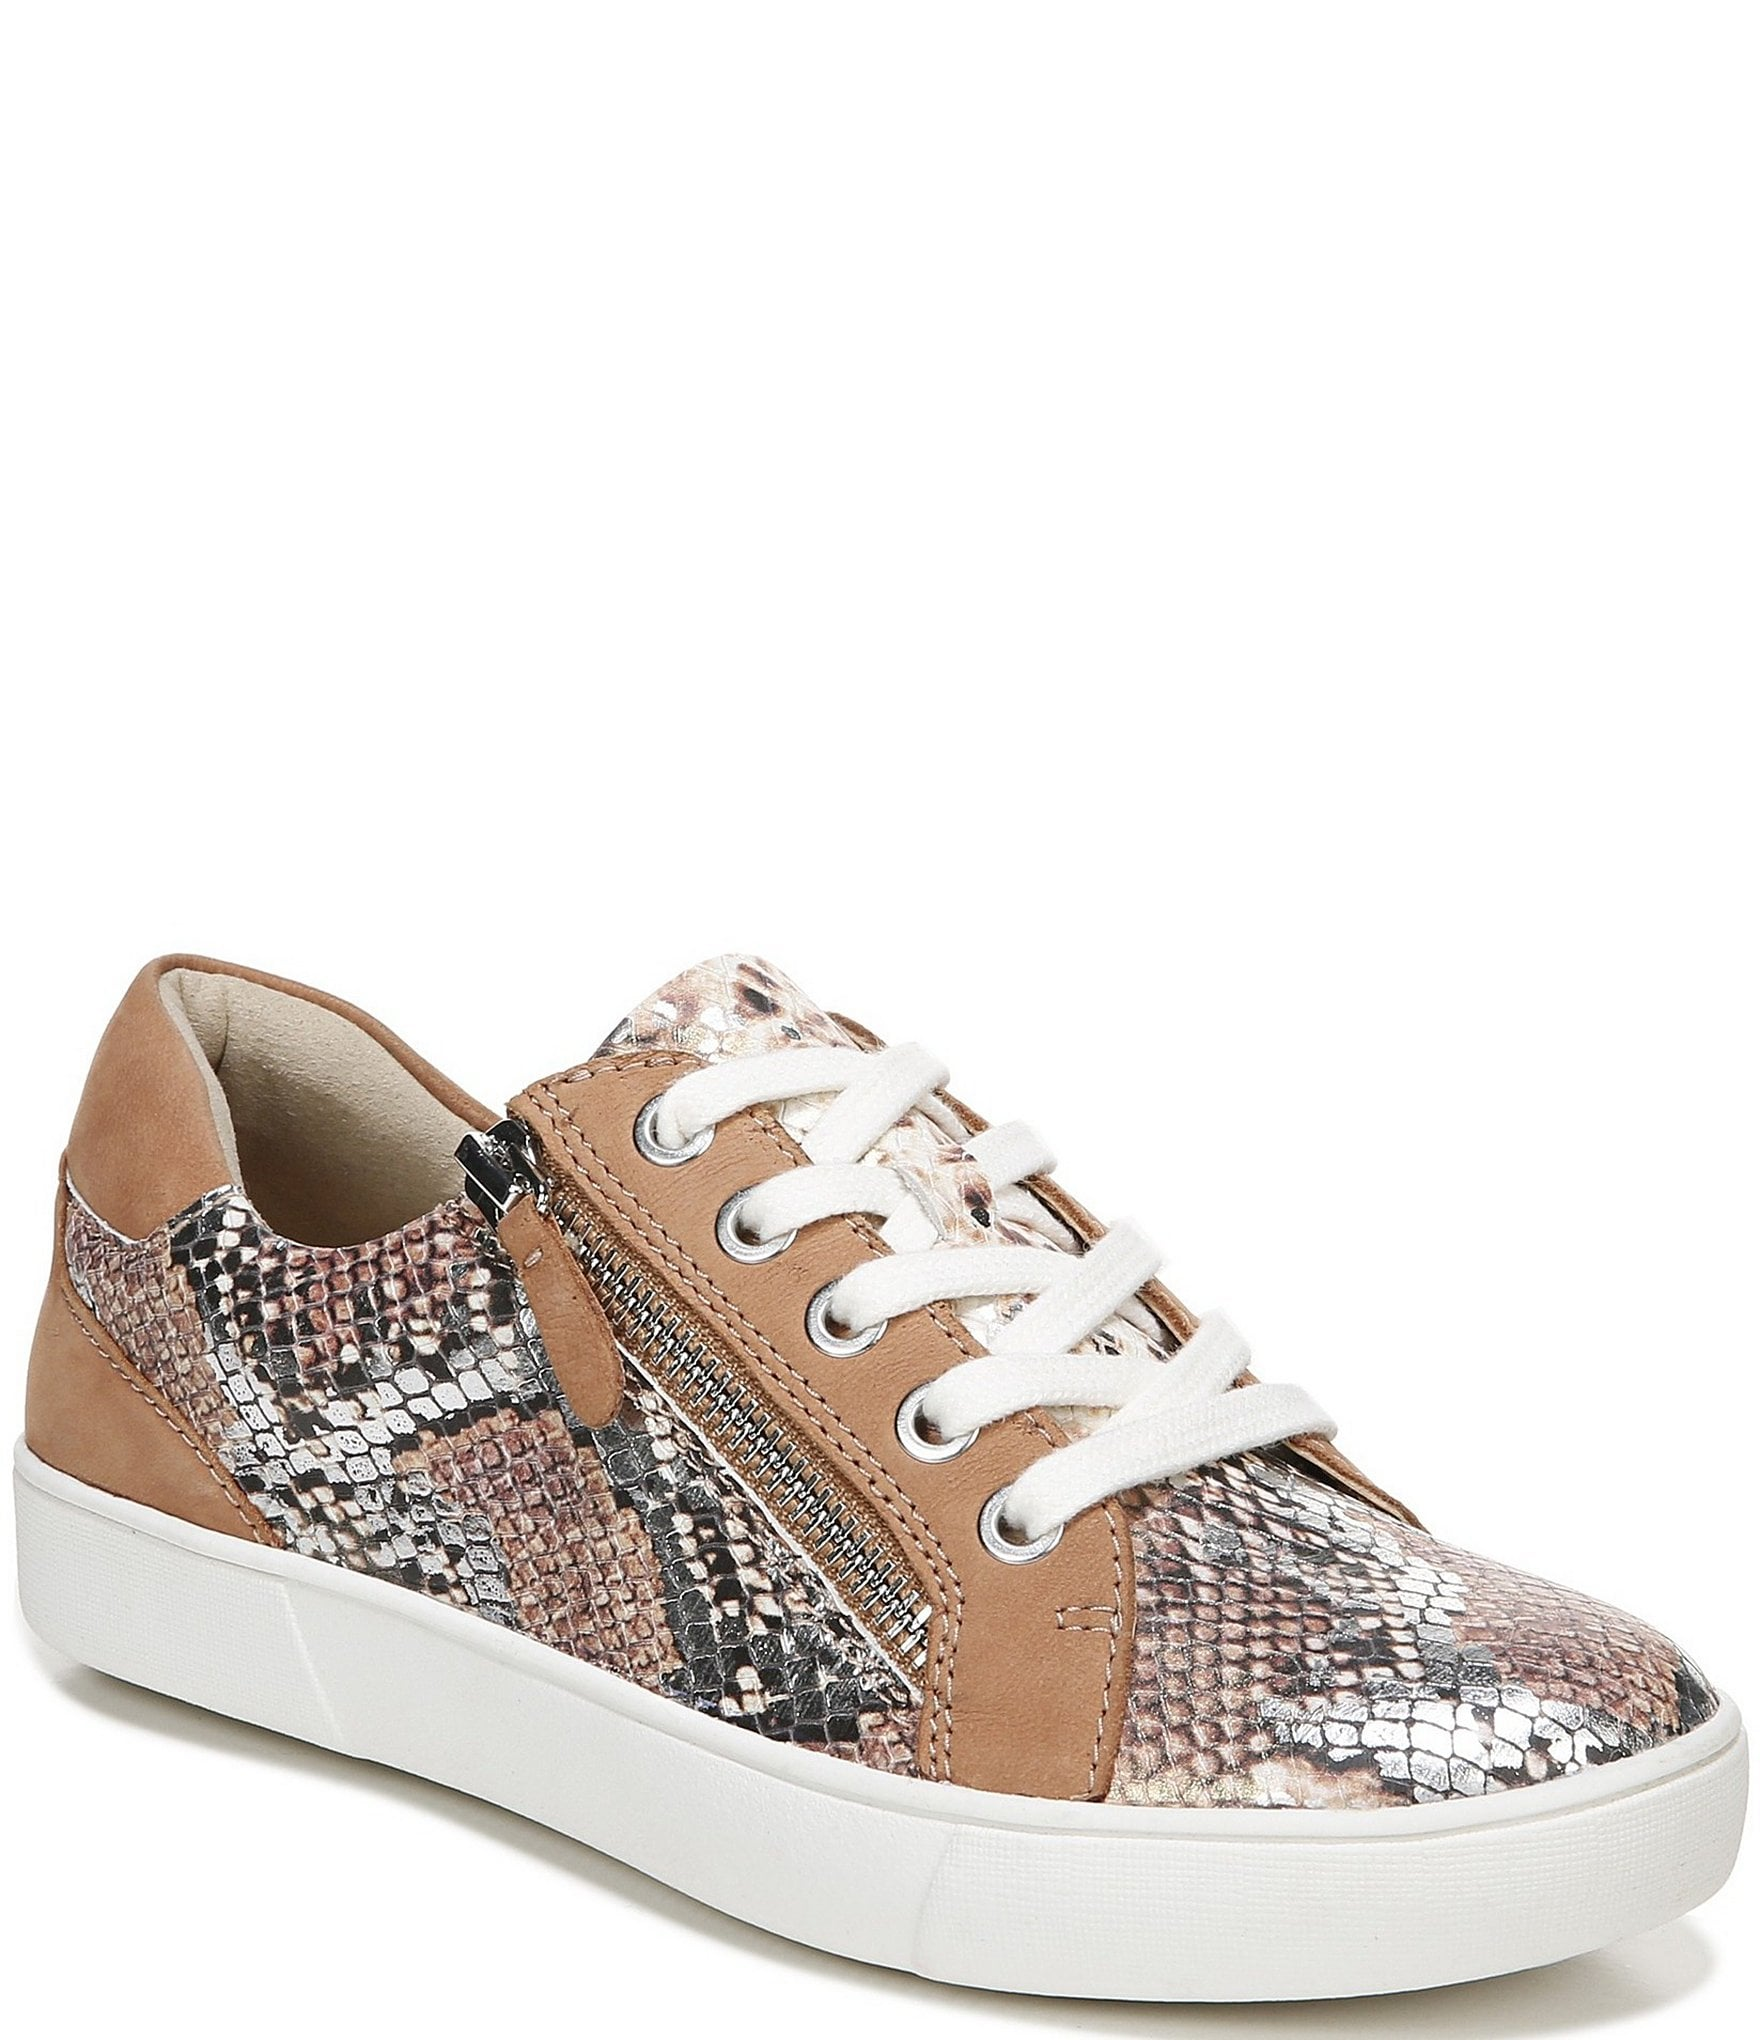 Details about  /Naturalizer Women/'s Macayla Sneaker